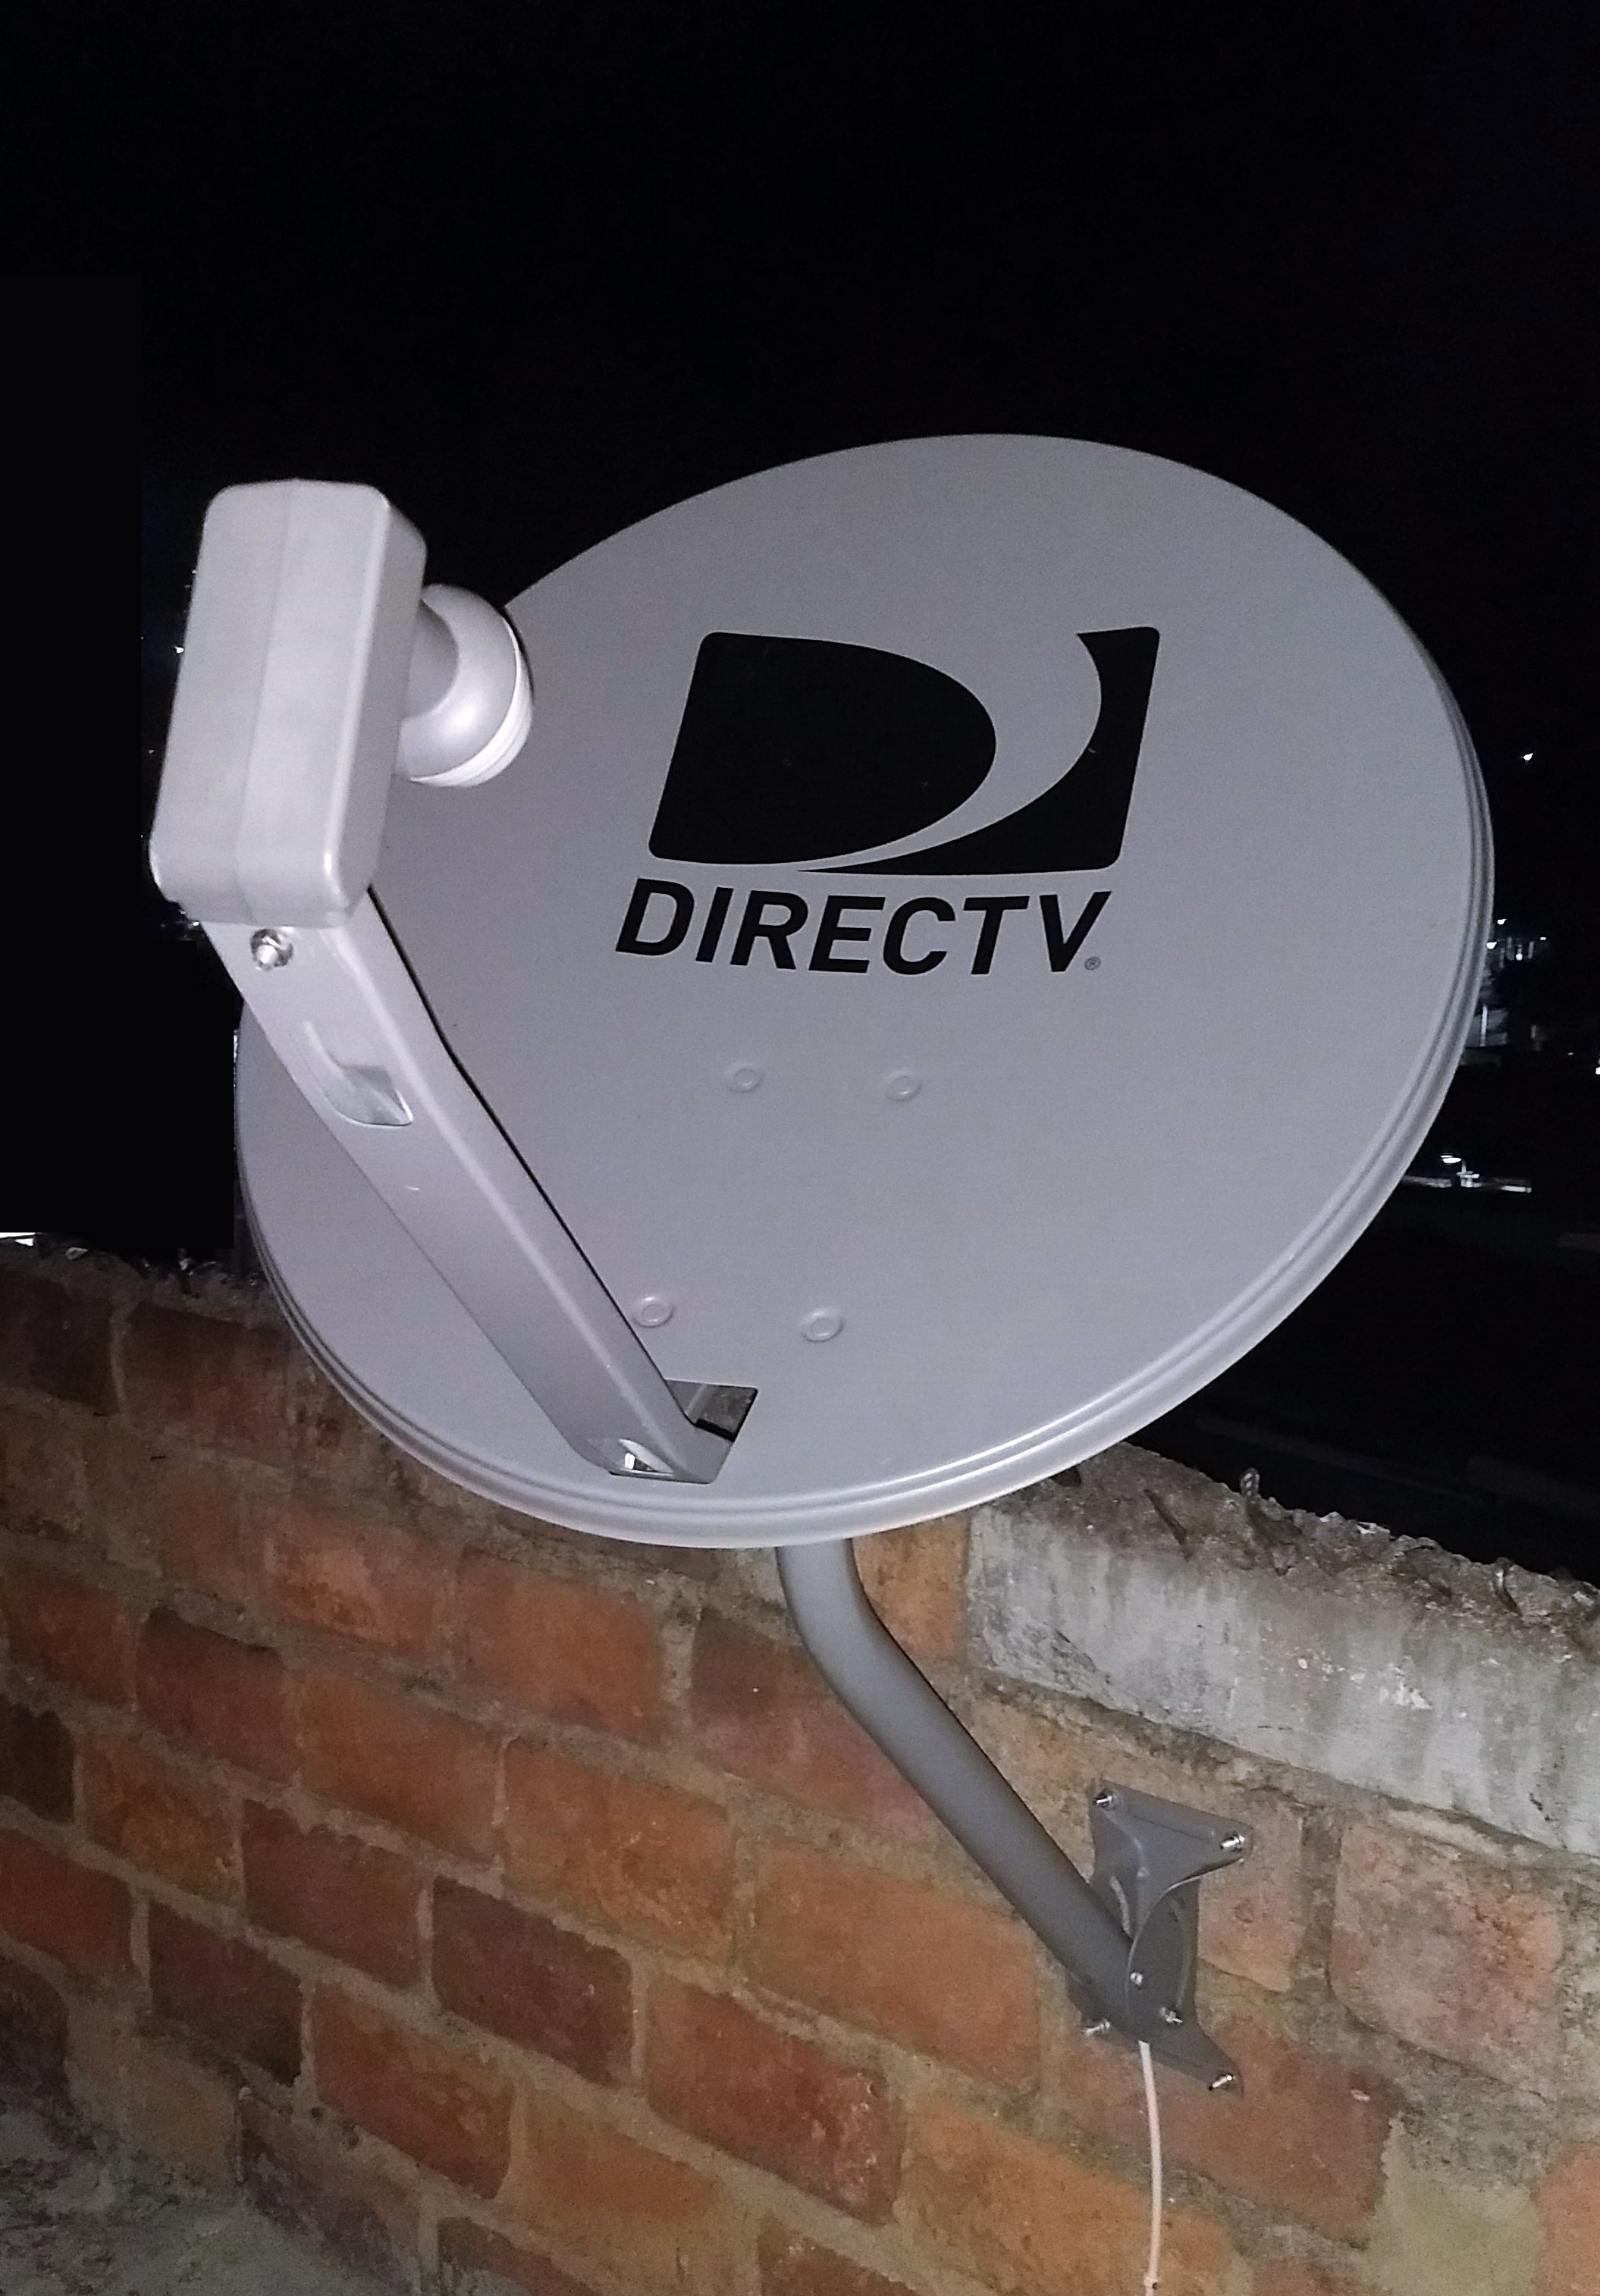 Direct Tv Cable And Internet >> Directv Wikipedia